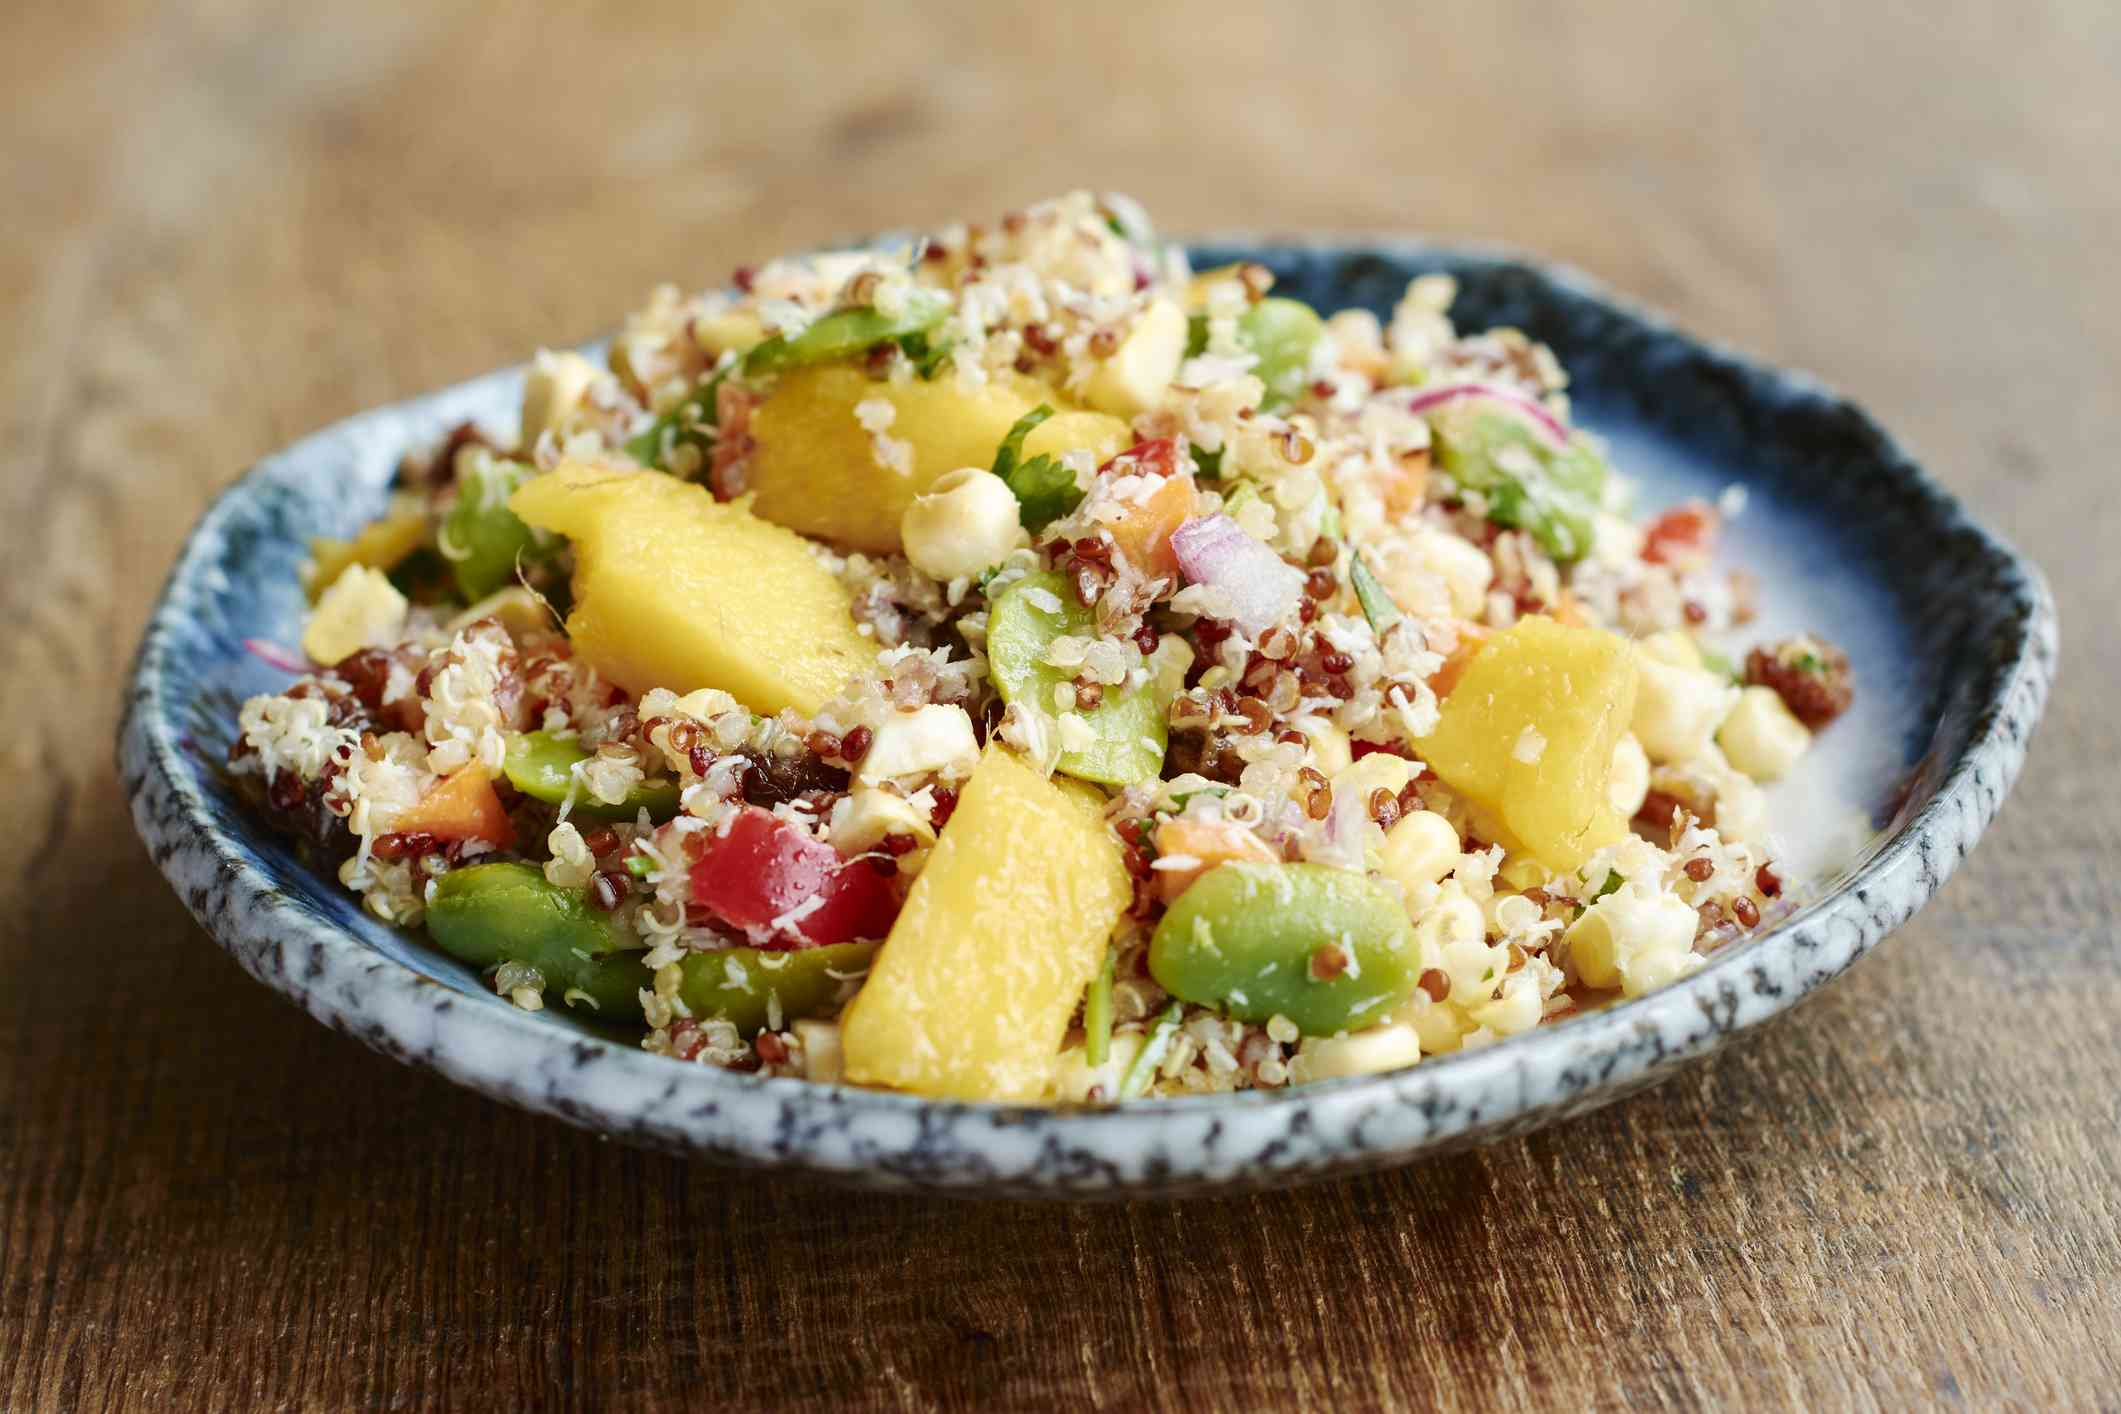 Quinoa salad with mango, beans, and onions